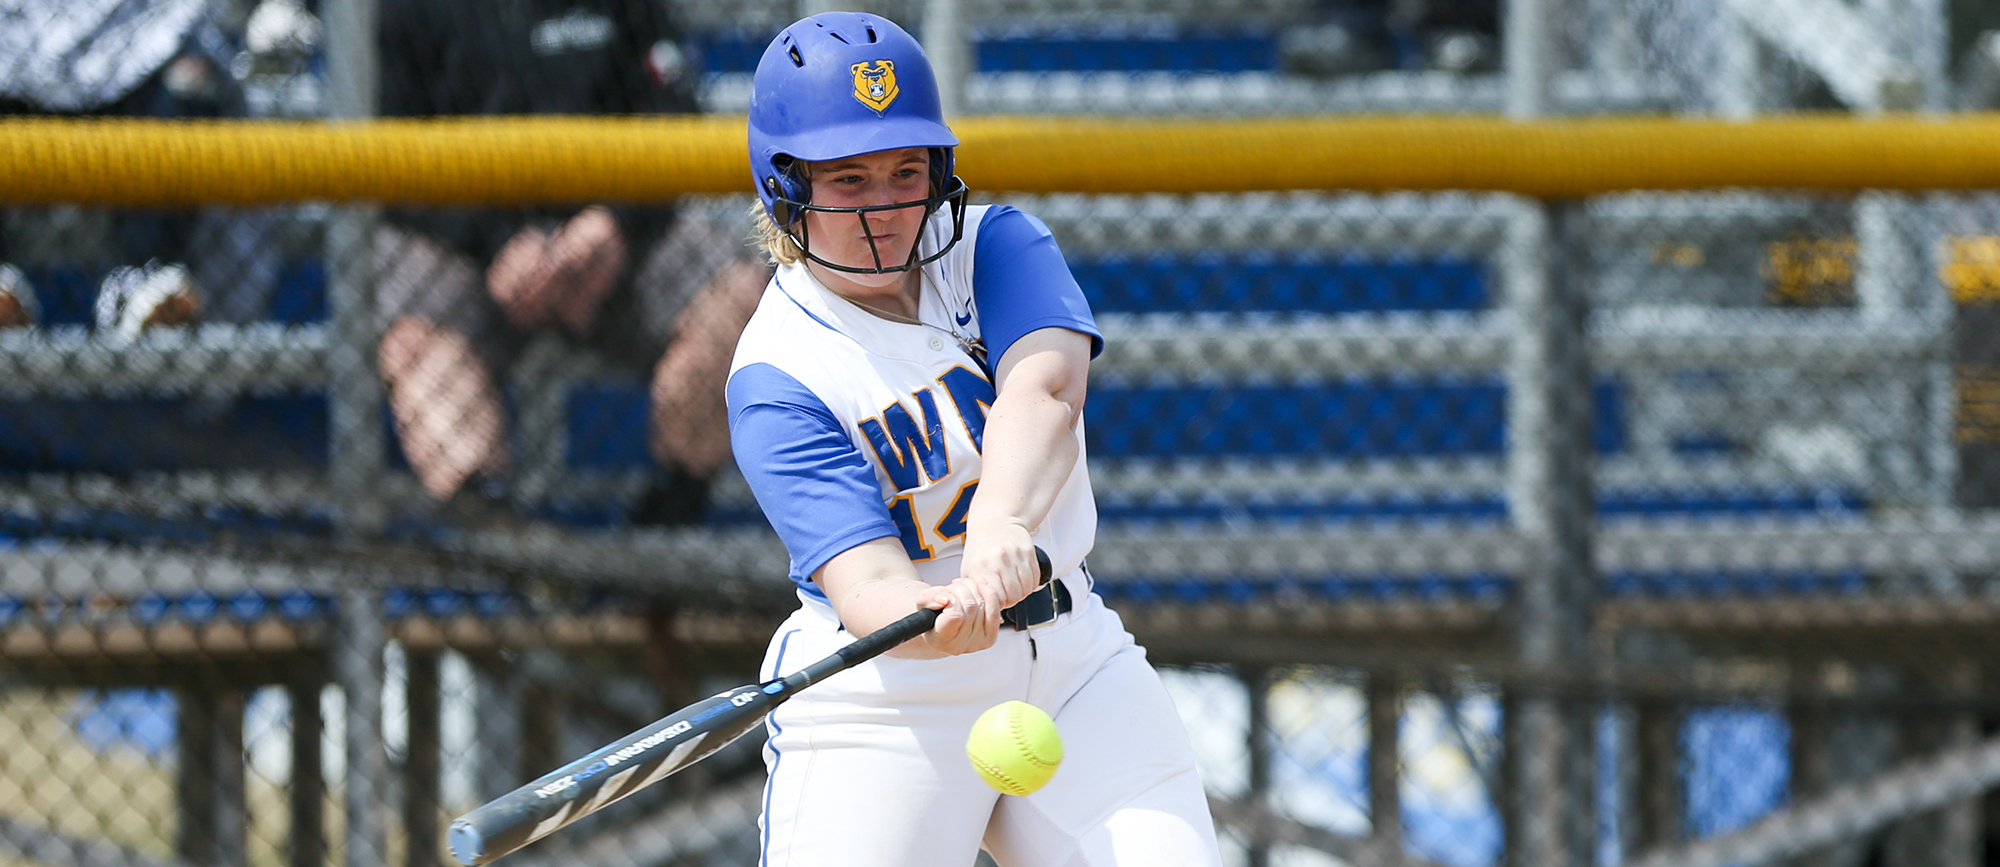 Dina DiBlasio hit her third home run of the season and added a double as Western New England fell to Endicott 4-1 & 4-3 on Wednesday. (Photo by Chris Marion)